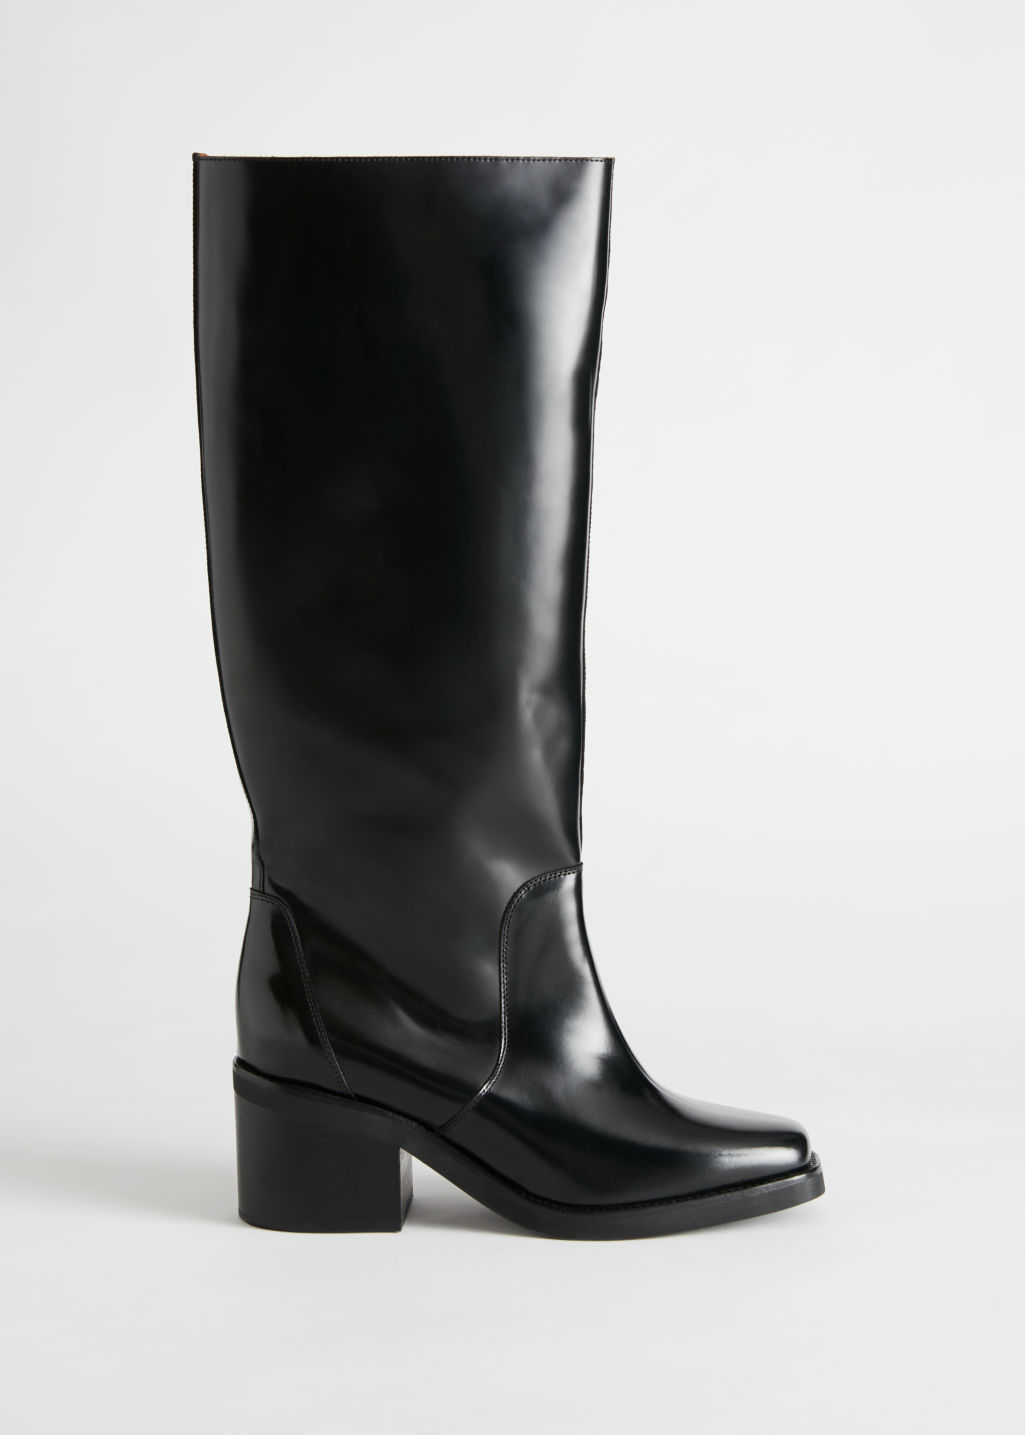 StillLife Side Image of Stories Square Toe Knee High Leather Boots in Black